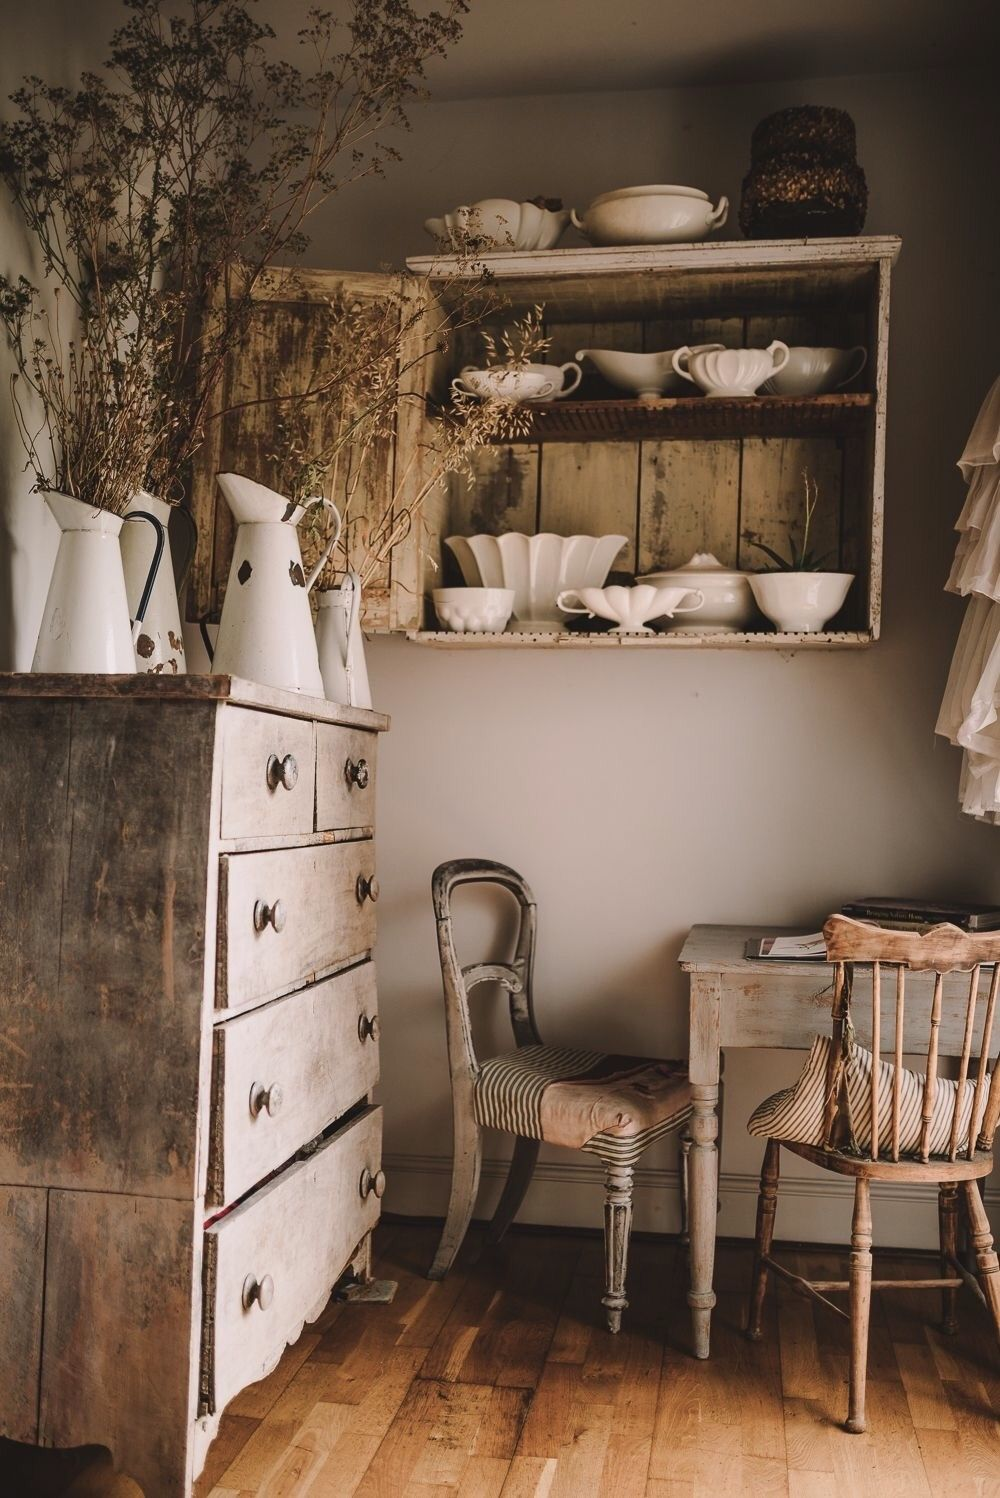 Enamelware pitchers in white with with brown